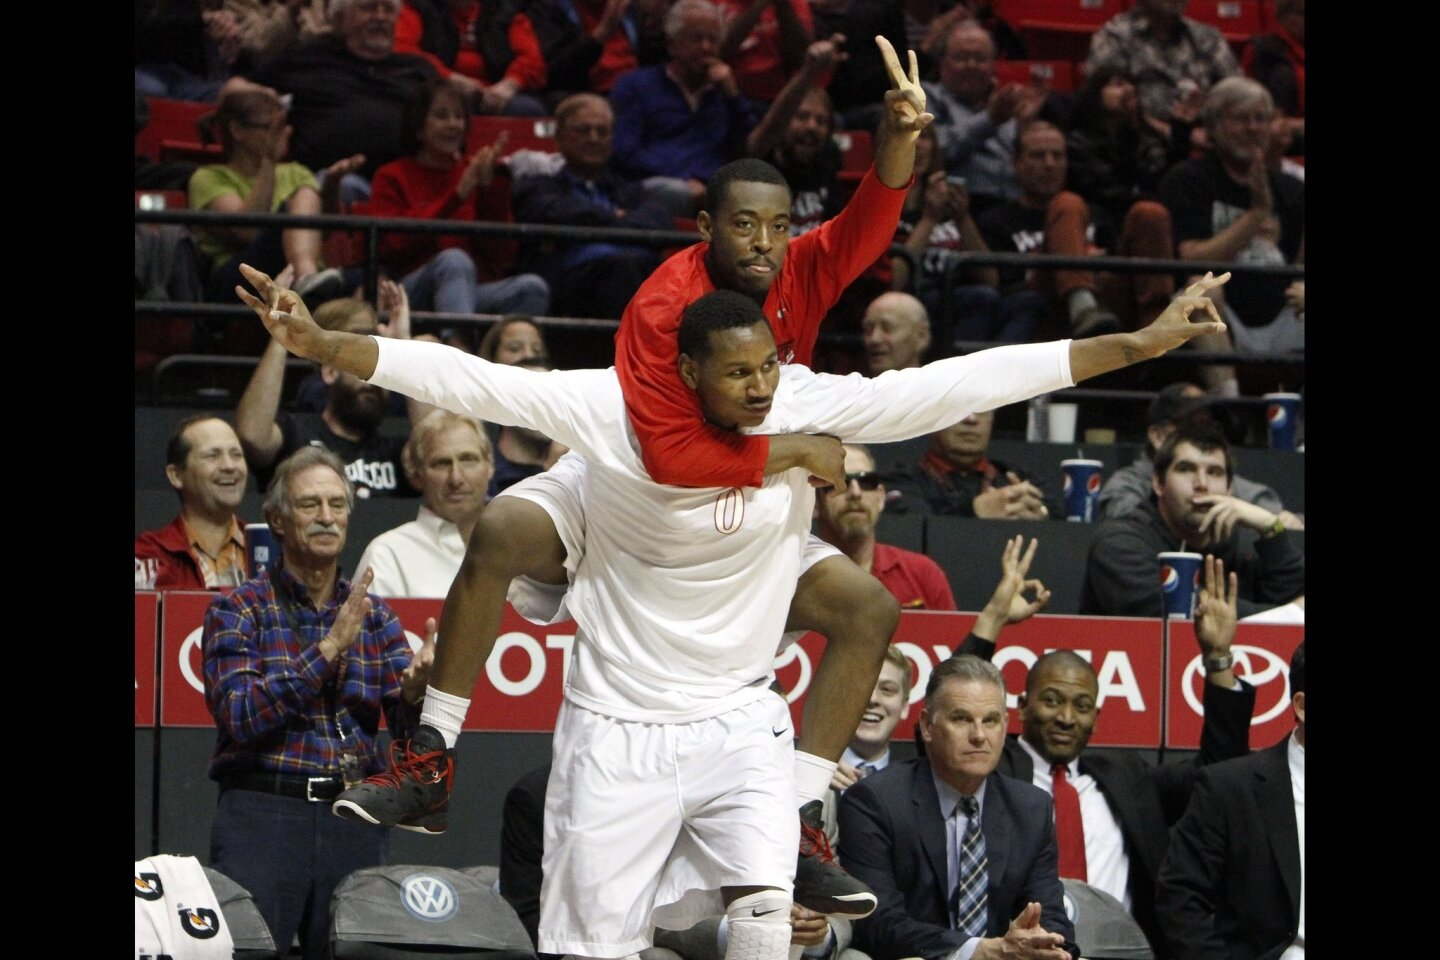 The Aztecs' Xavier Thames jumps on the back of Skylar Spencer as they cheer on their teammates during the second half against St. Katherine College at the Viejas Arena in San Diego on Friday, December, 27, 2013.